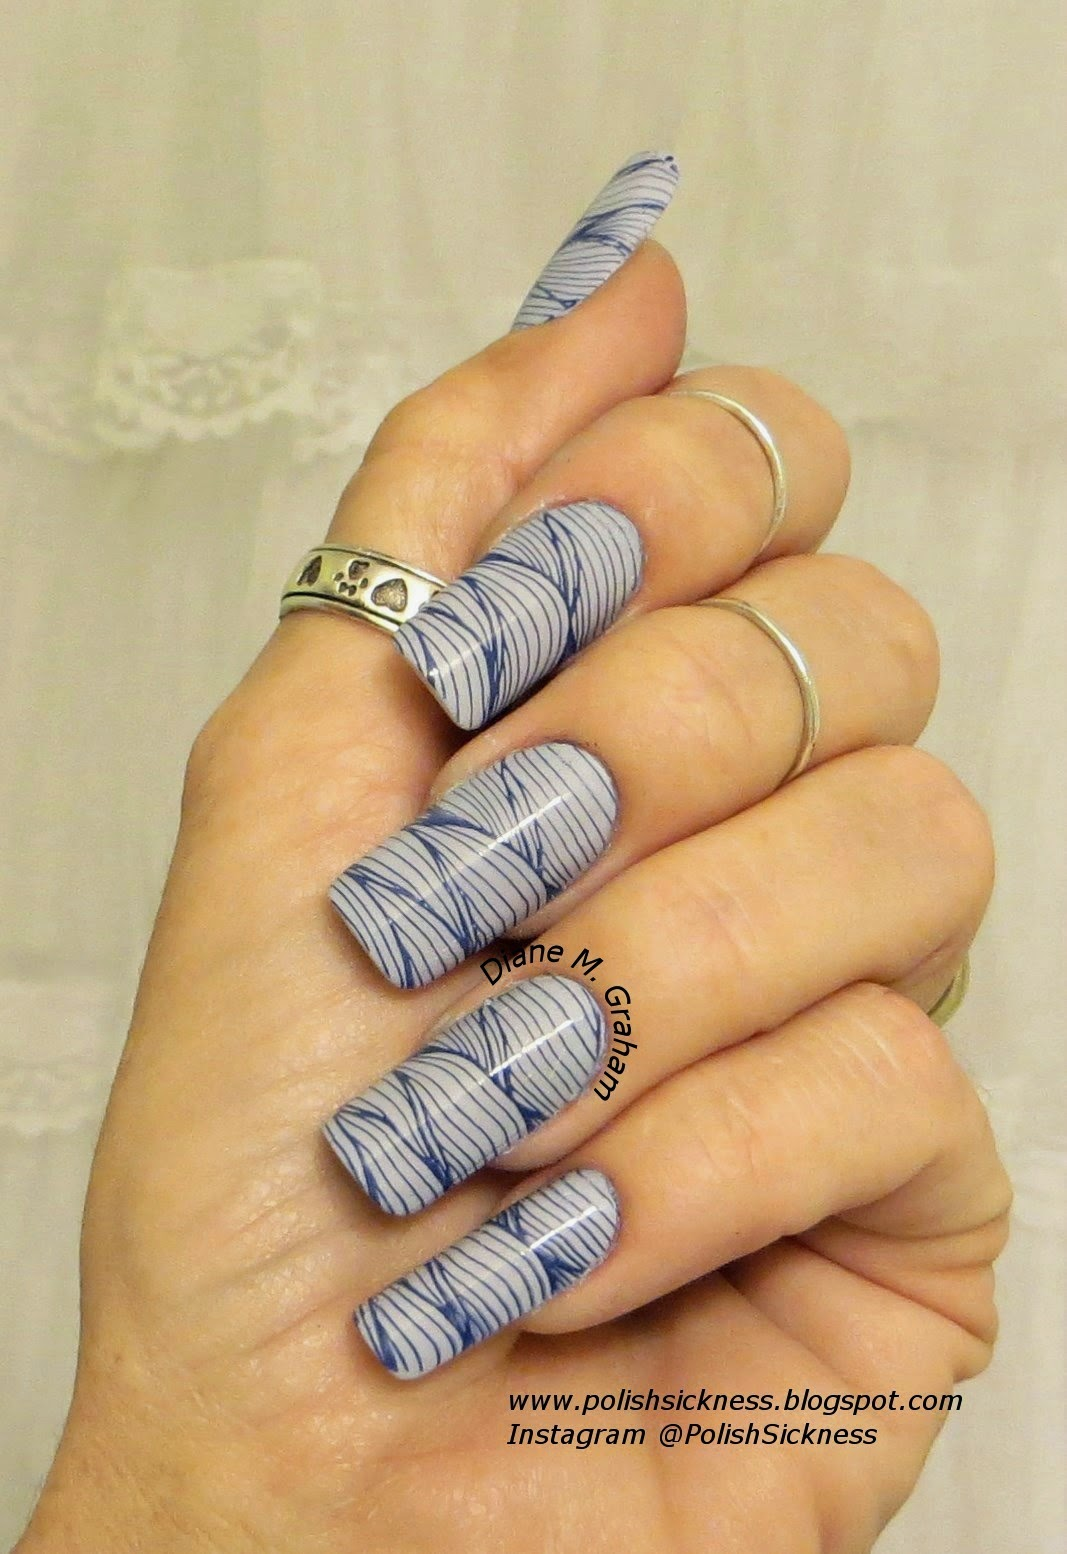 China Glaze Agent Lavender, American Apparel Mount Royal, Ali Express AP 21 stamp